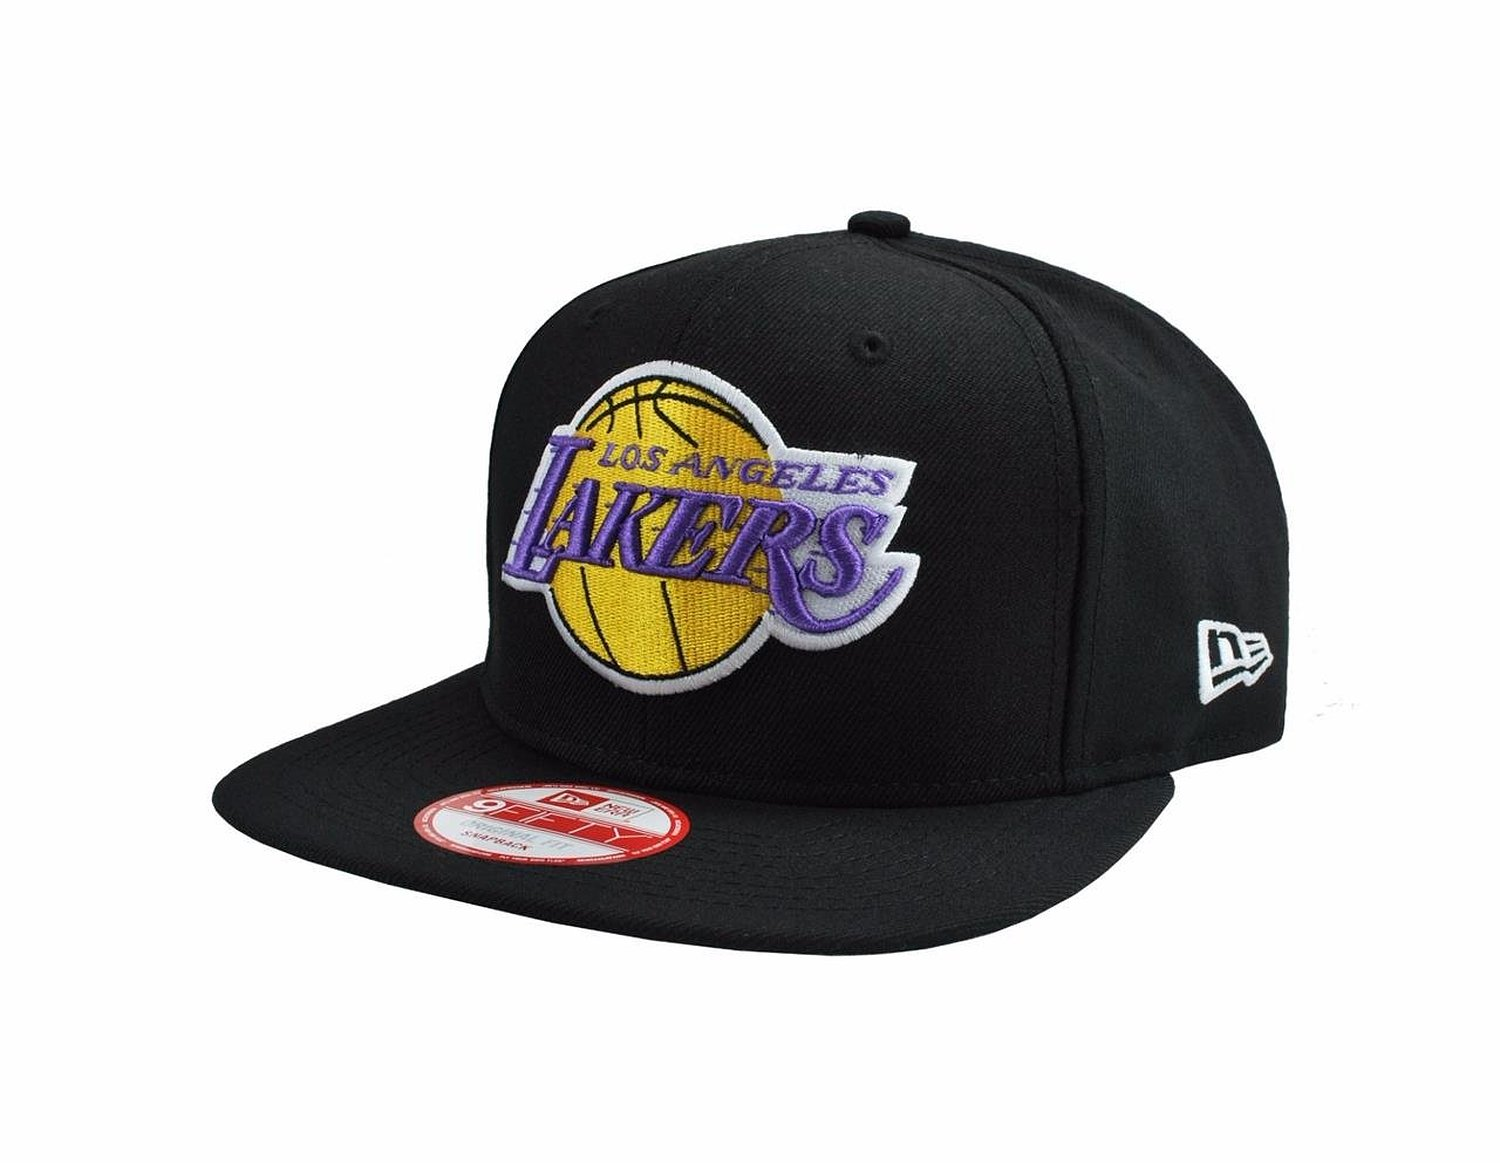 sneakers for cheap 97a1f cfa63 New Era 9fifty Hat Los Angeles Lakers Snapback ONE Size Black Cap